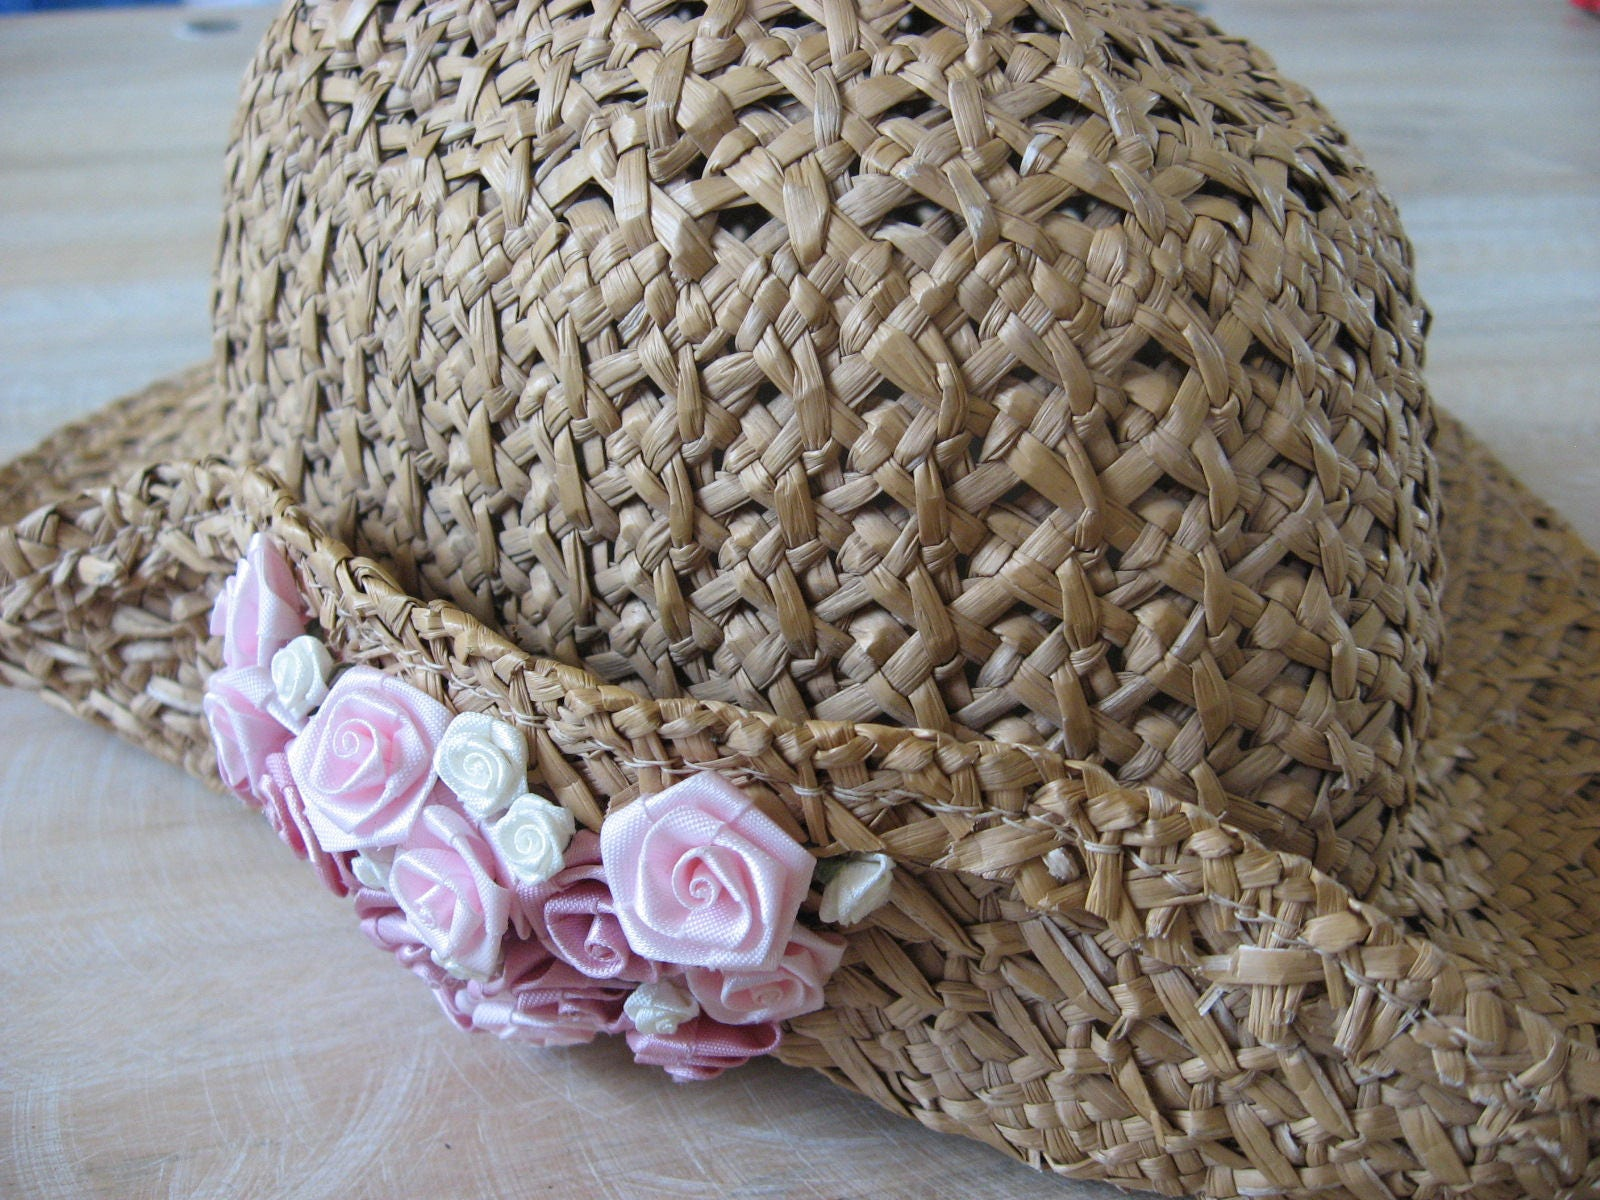 098994cc7 Vintage straw hat with pink roses, perfect for spring or summer. Pretty 80s  floral sun bonnet.